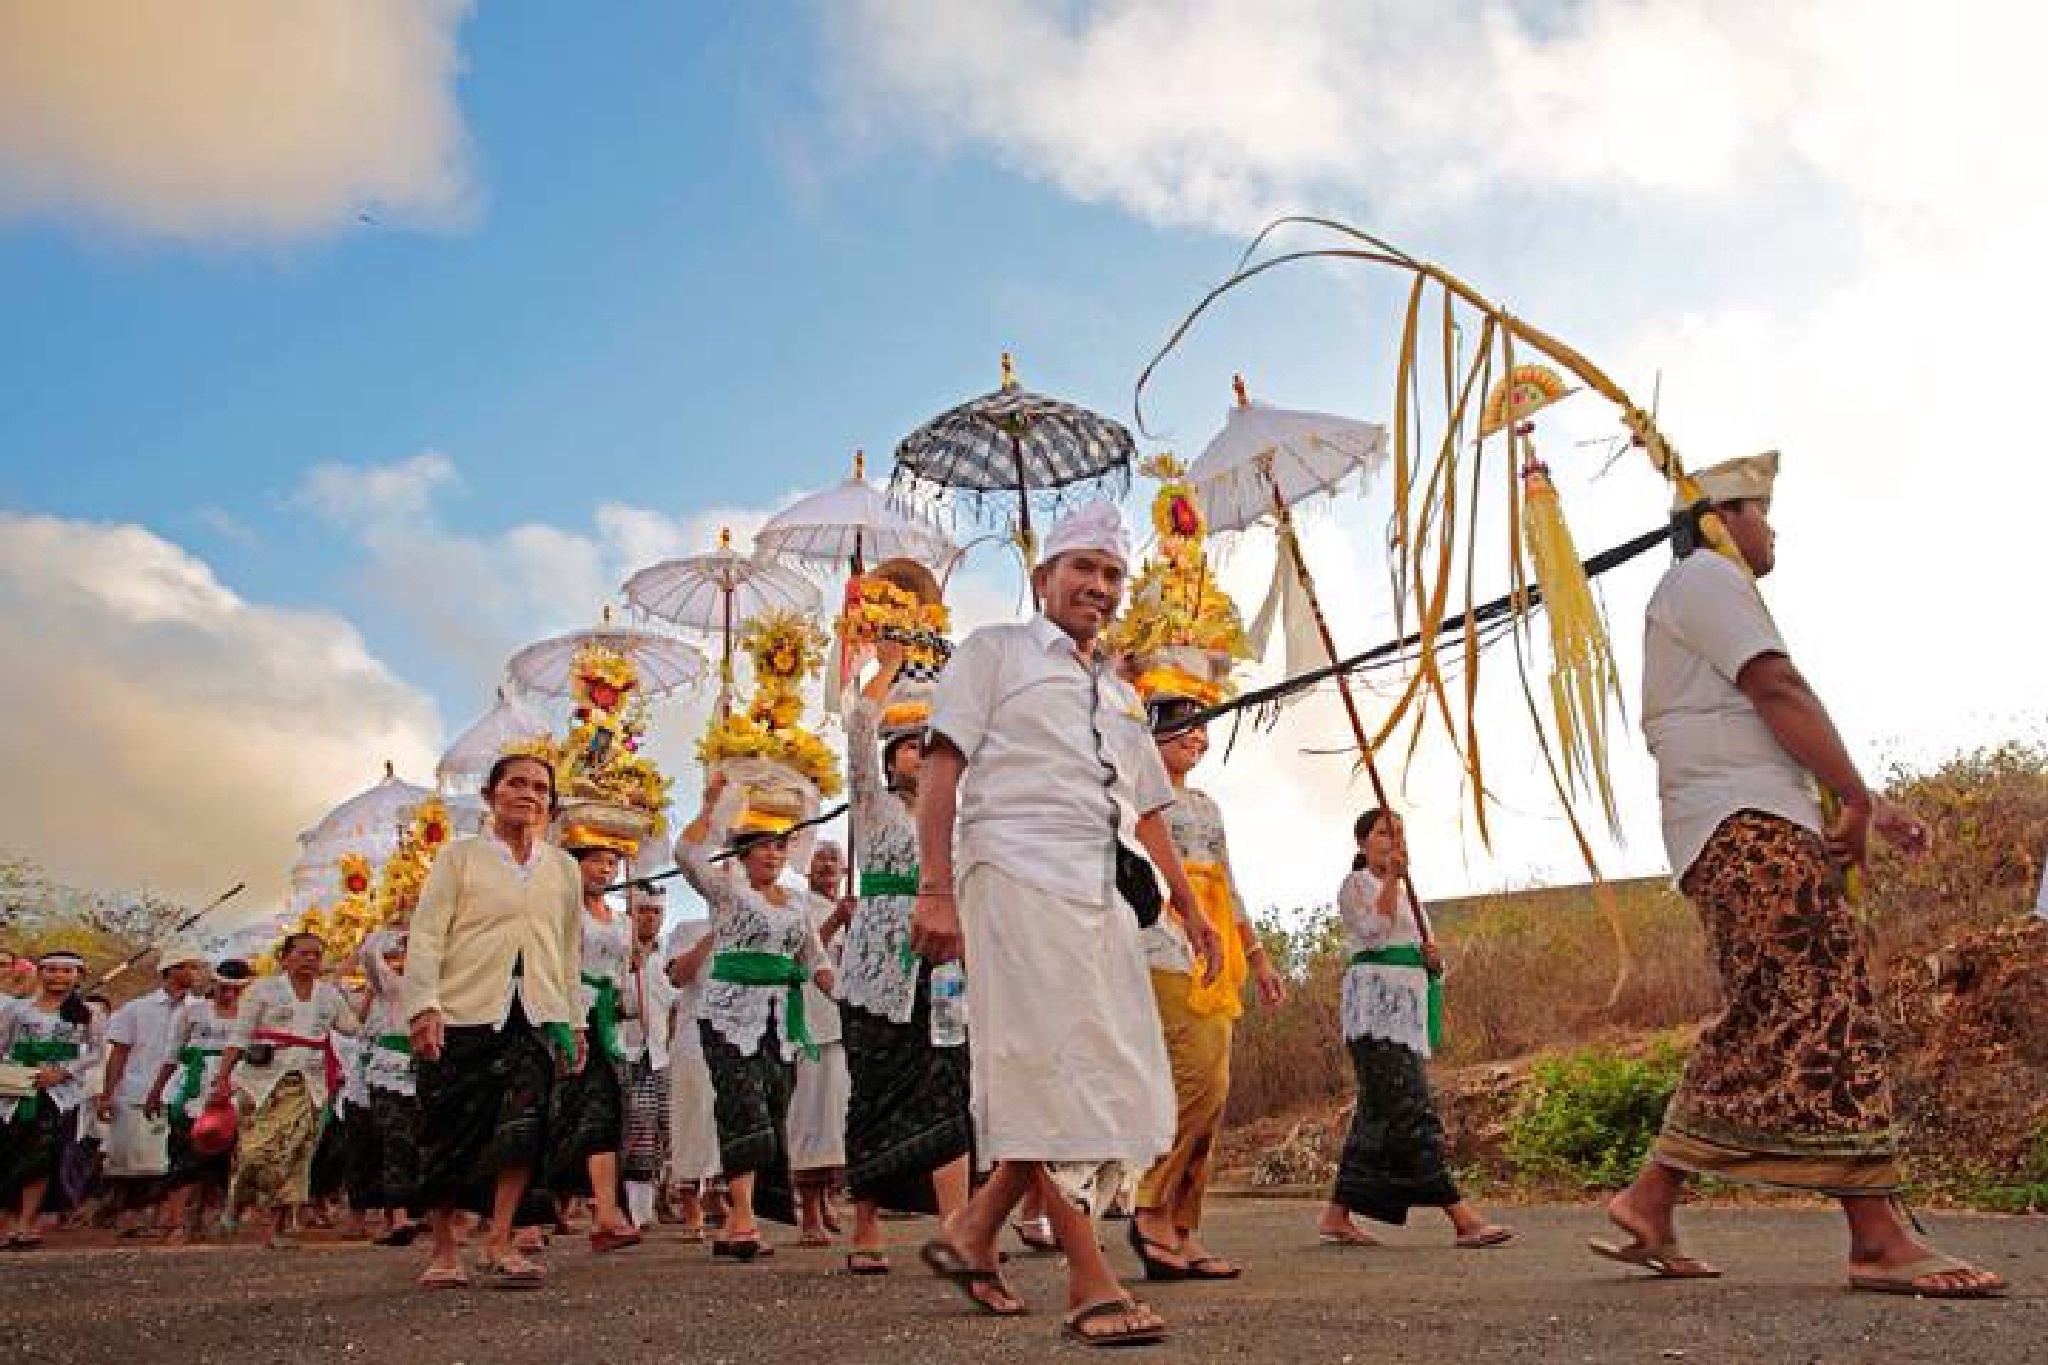 Balinese ceremony by Astina77